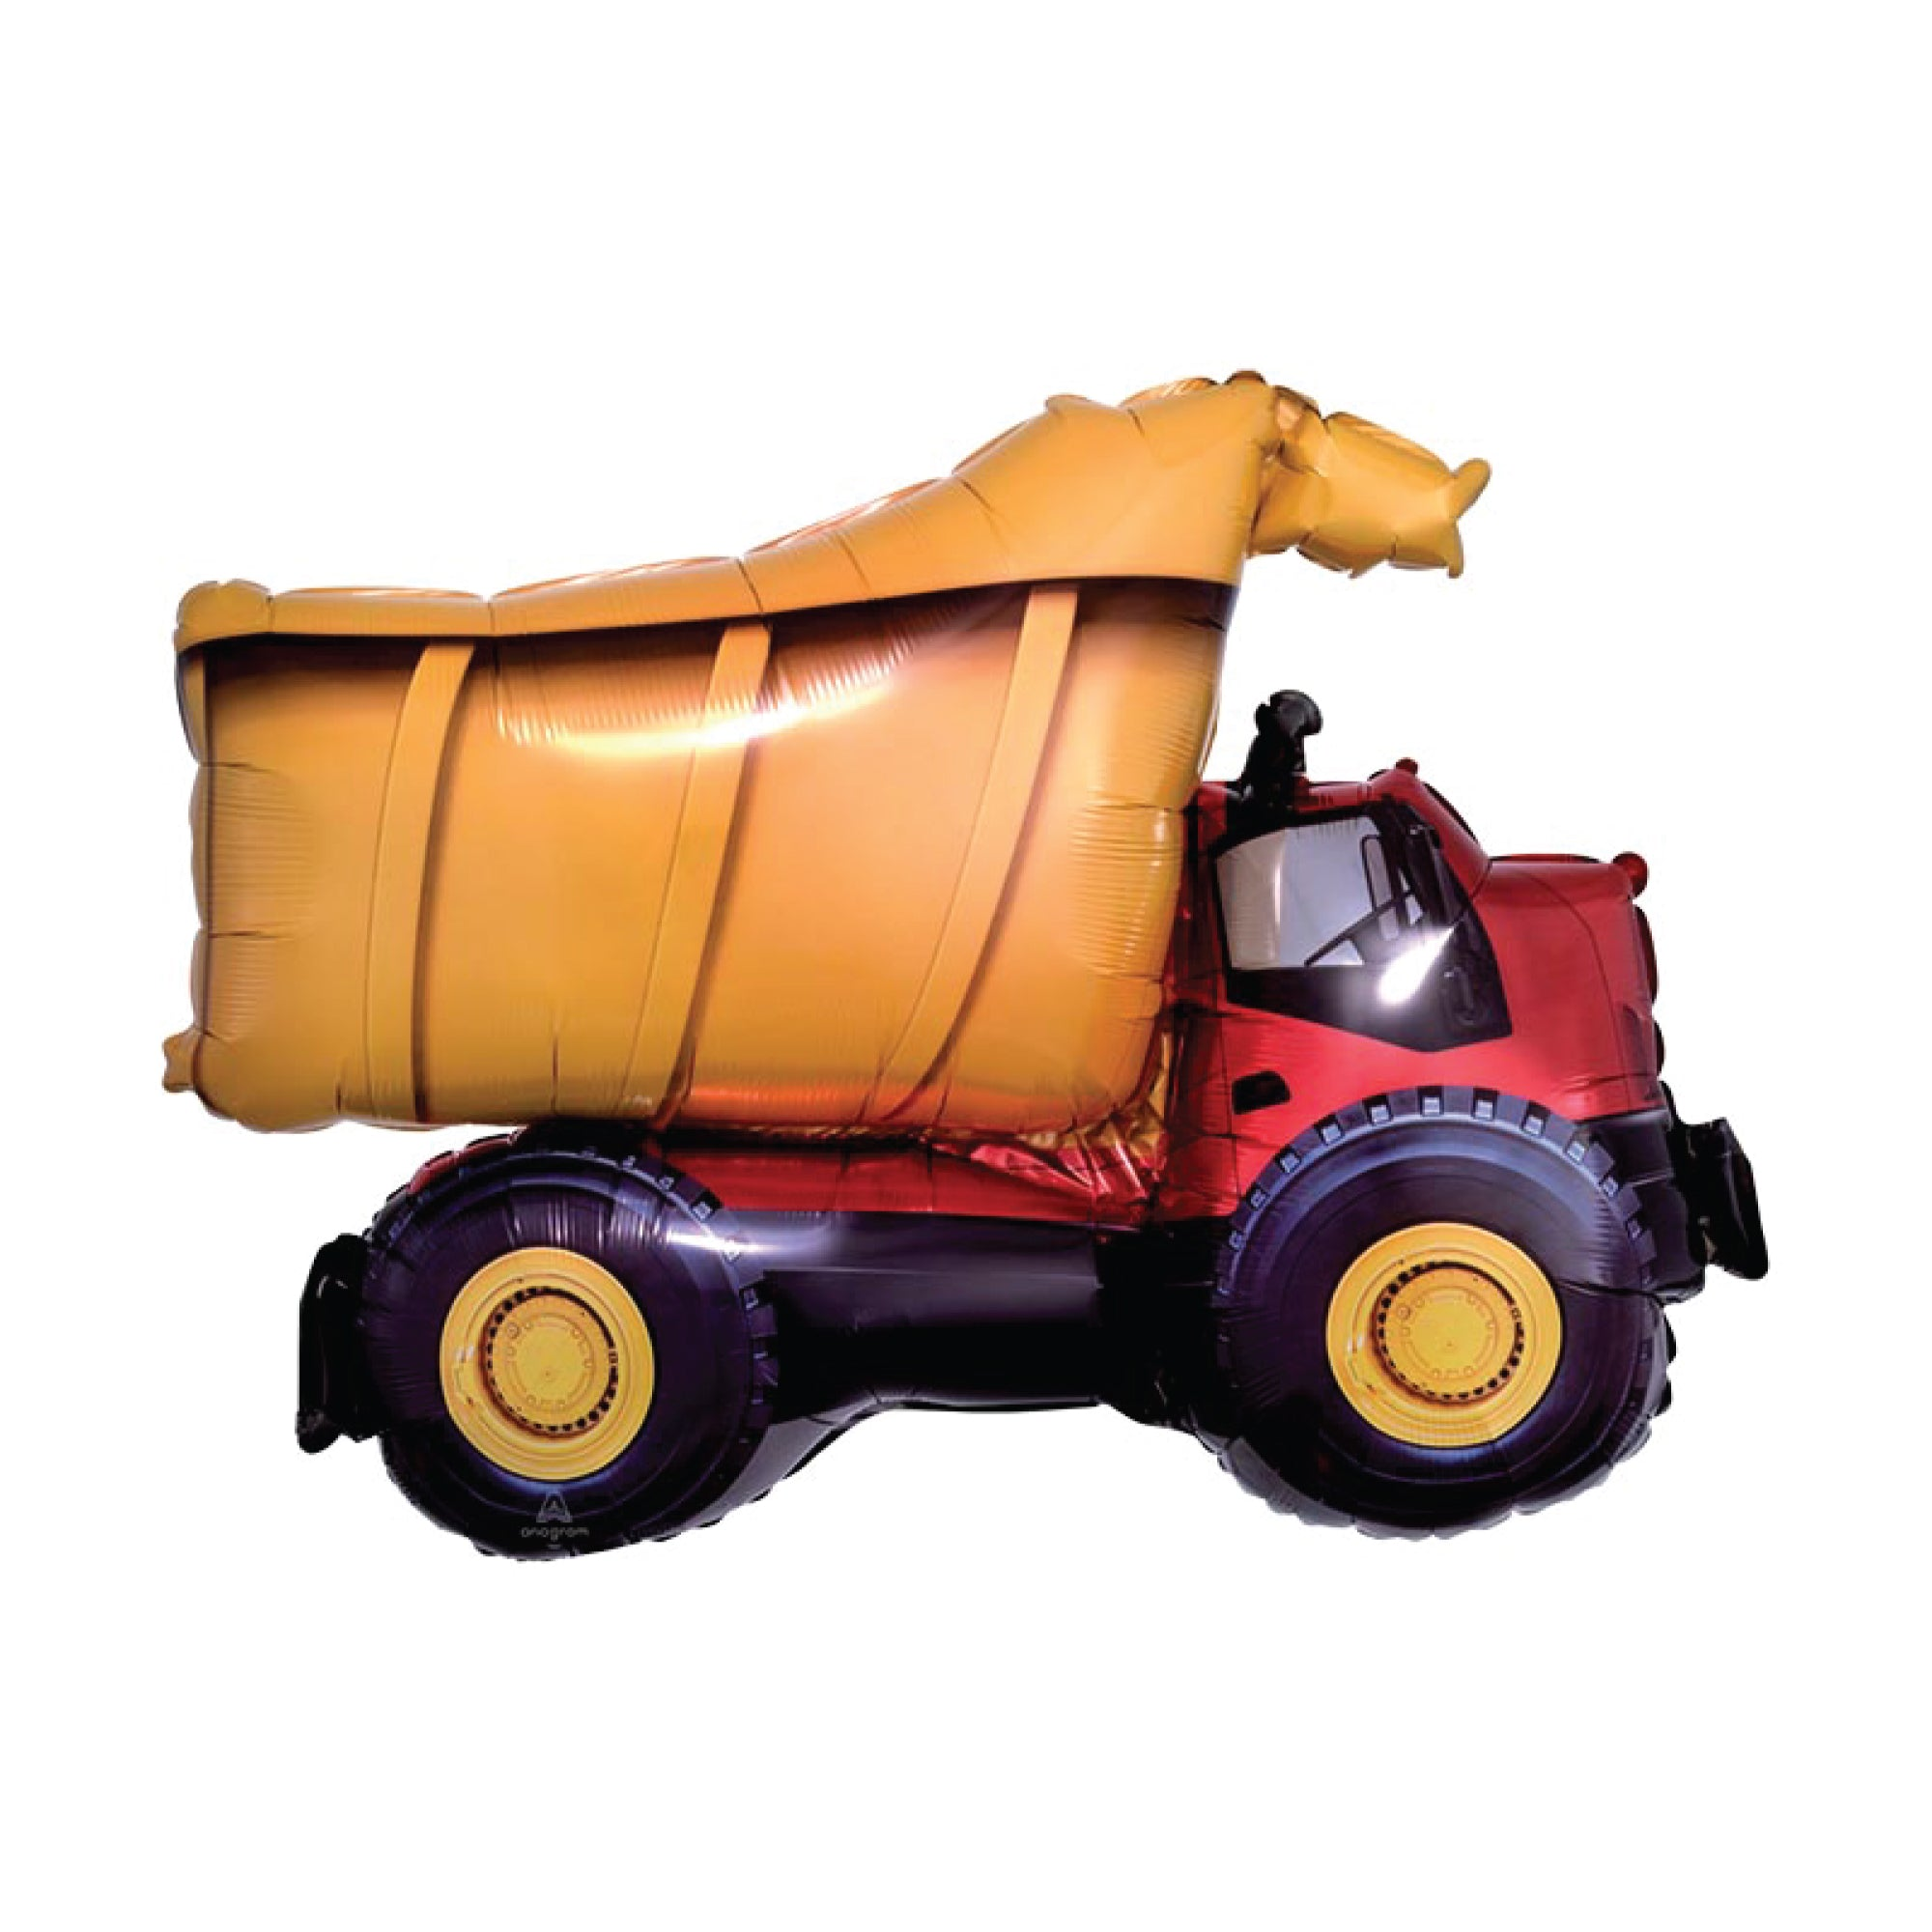 Construction Dump Truck Foil Balloon 32"